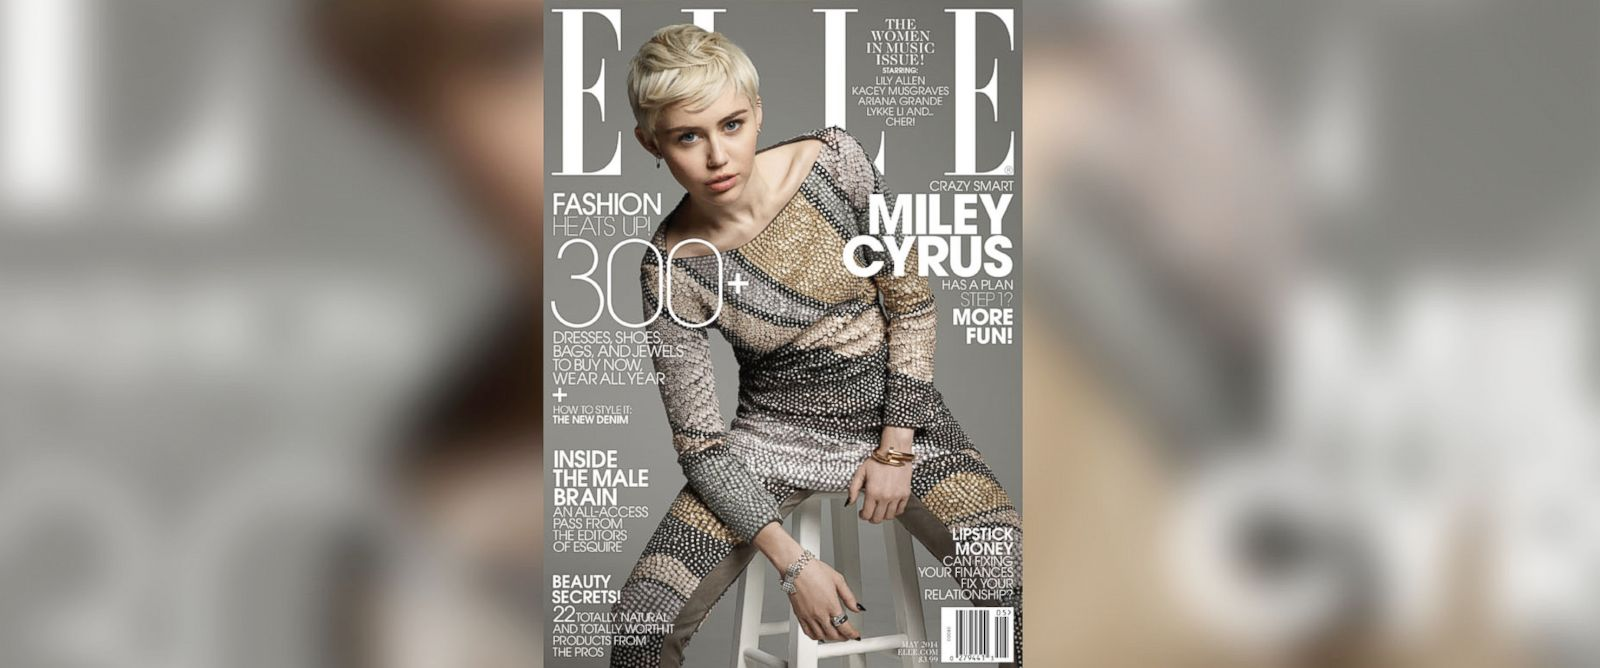 PHOTO: Miley Cyrus on the cover of the May 2014 issue of Elle.